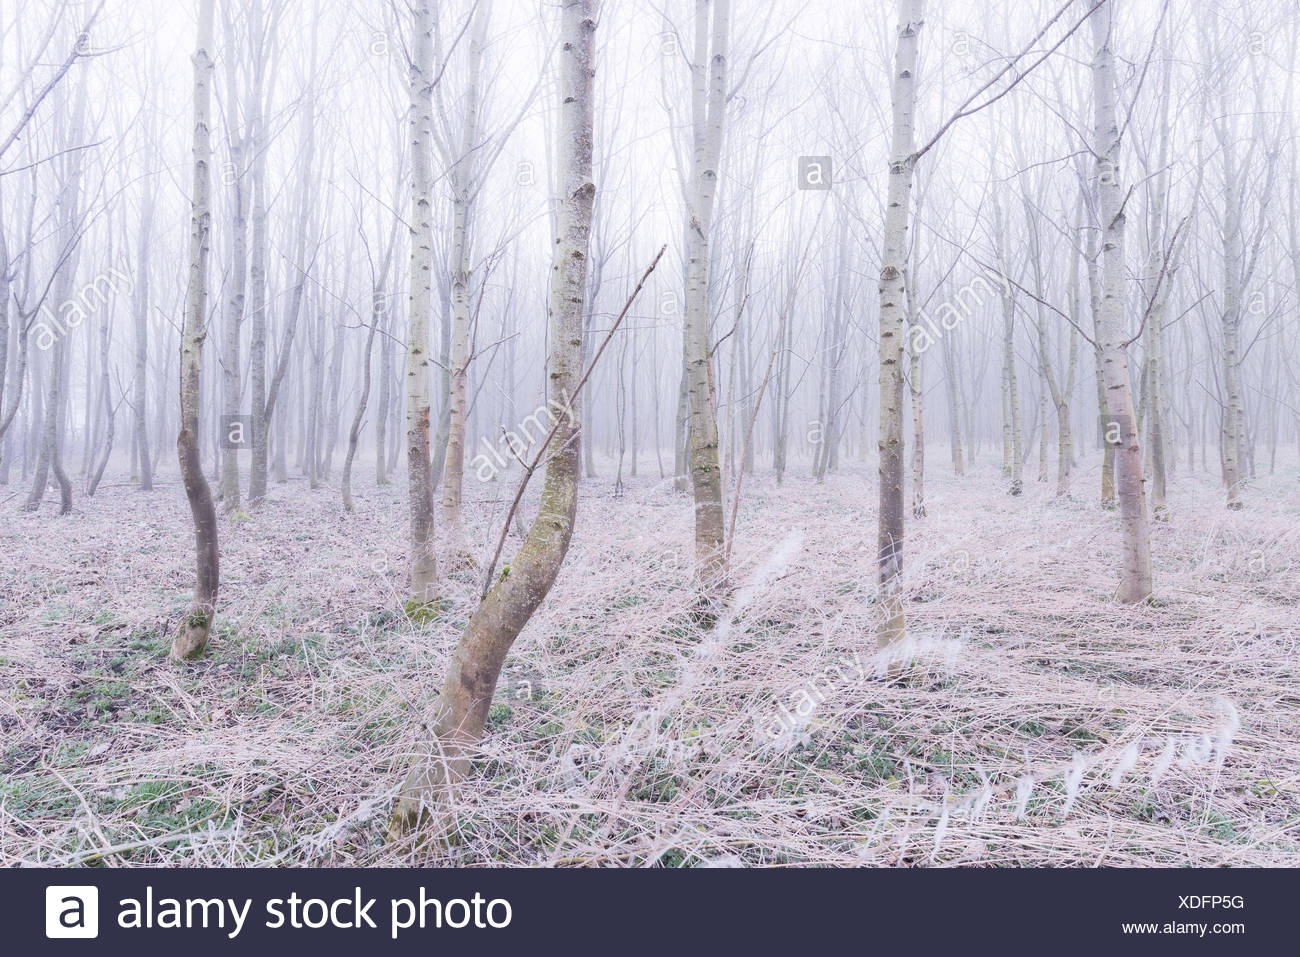 Wood, fog, morning, trunks, tree, grass, atmosphere, bright, mauve, unbowed - Stock Image